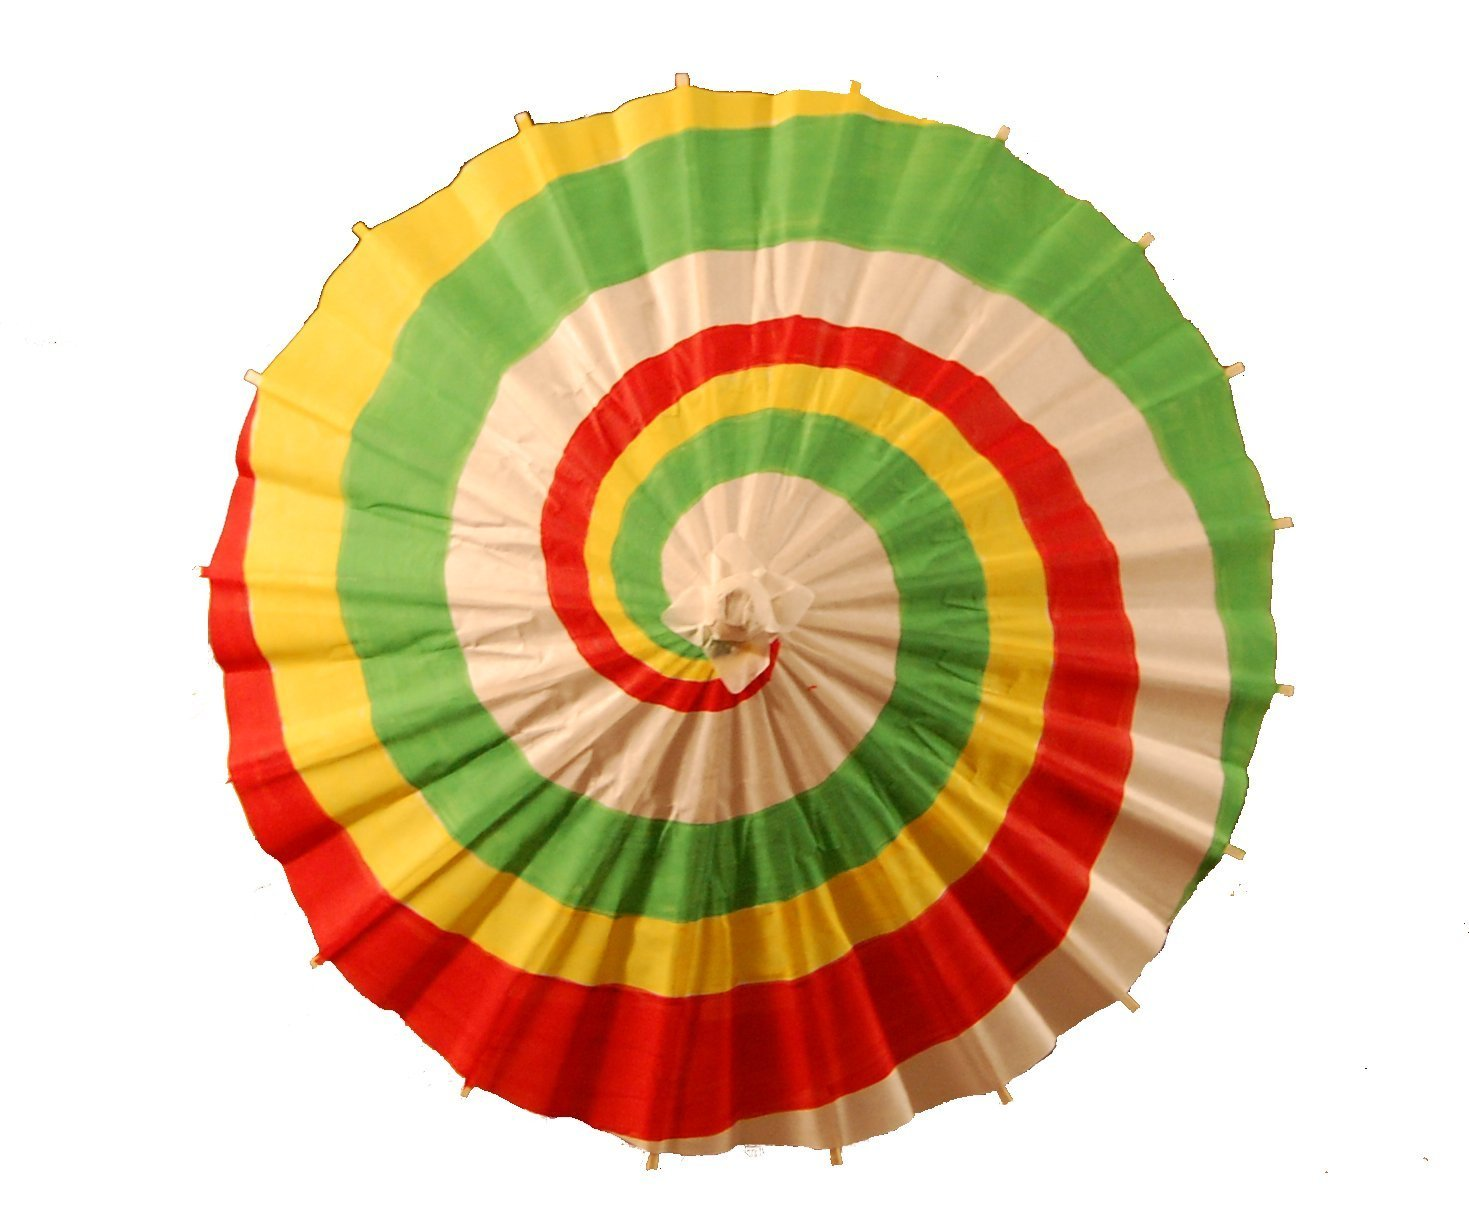 Miniature Firefly Kaylee's Paper Parasol Hand Painted Tri-Colored Costume Cosplay Replica